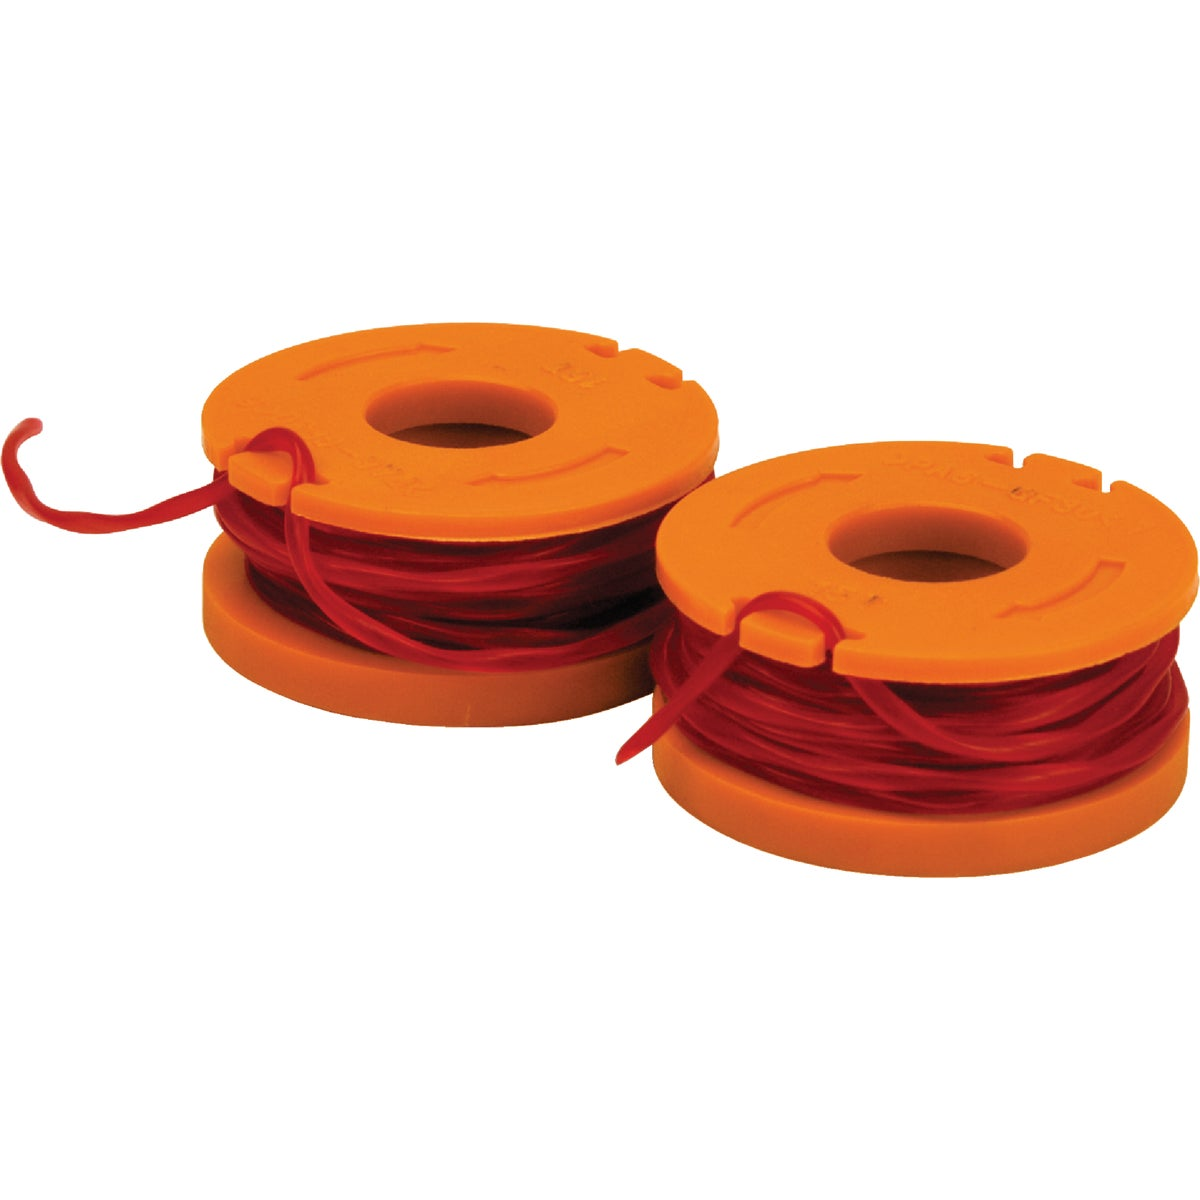 REPL TRIMMER LINE SPOOL - WA0004.M1 by Positec Usa Inc